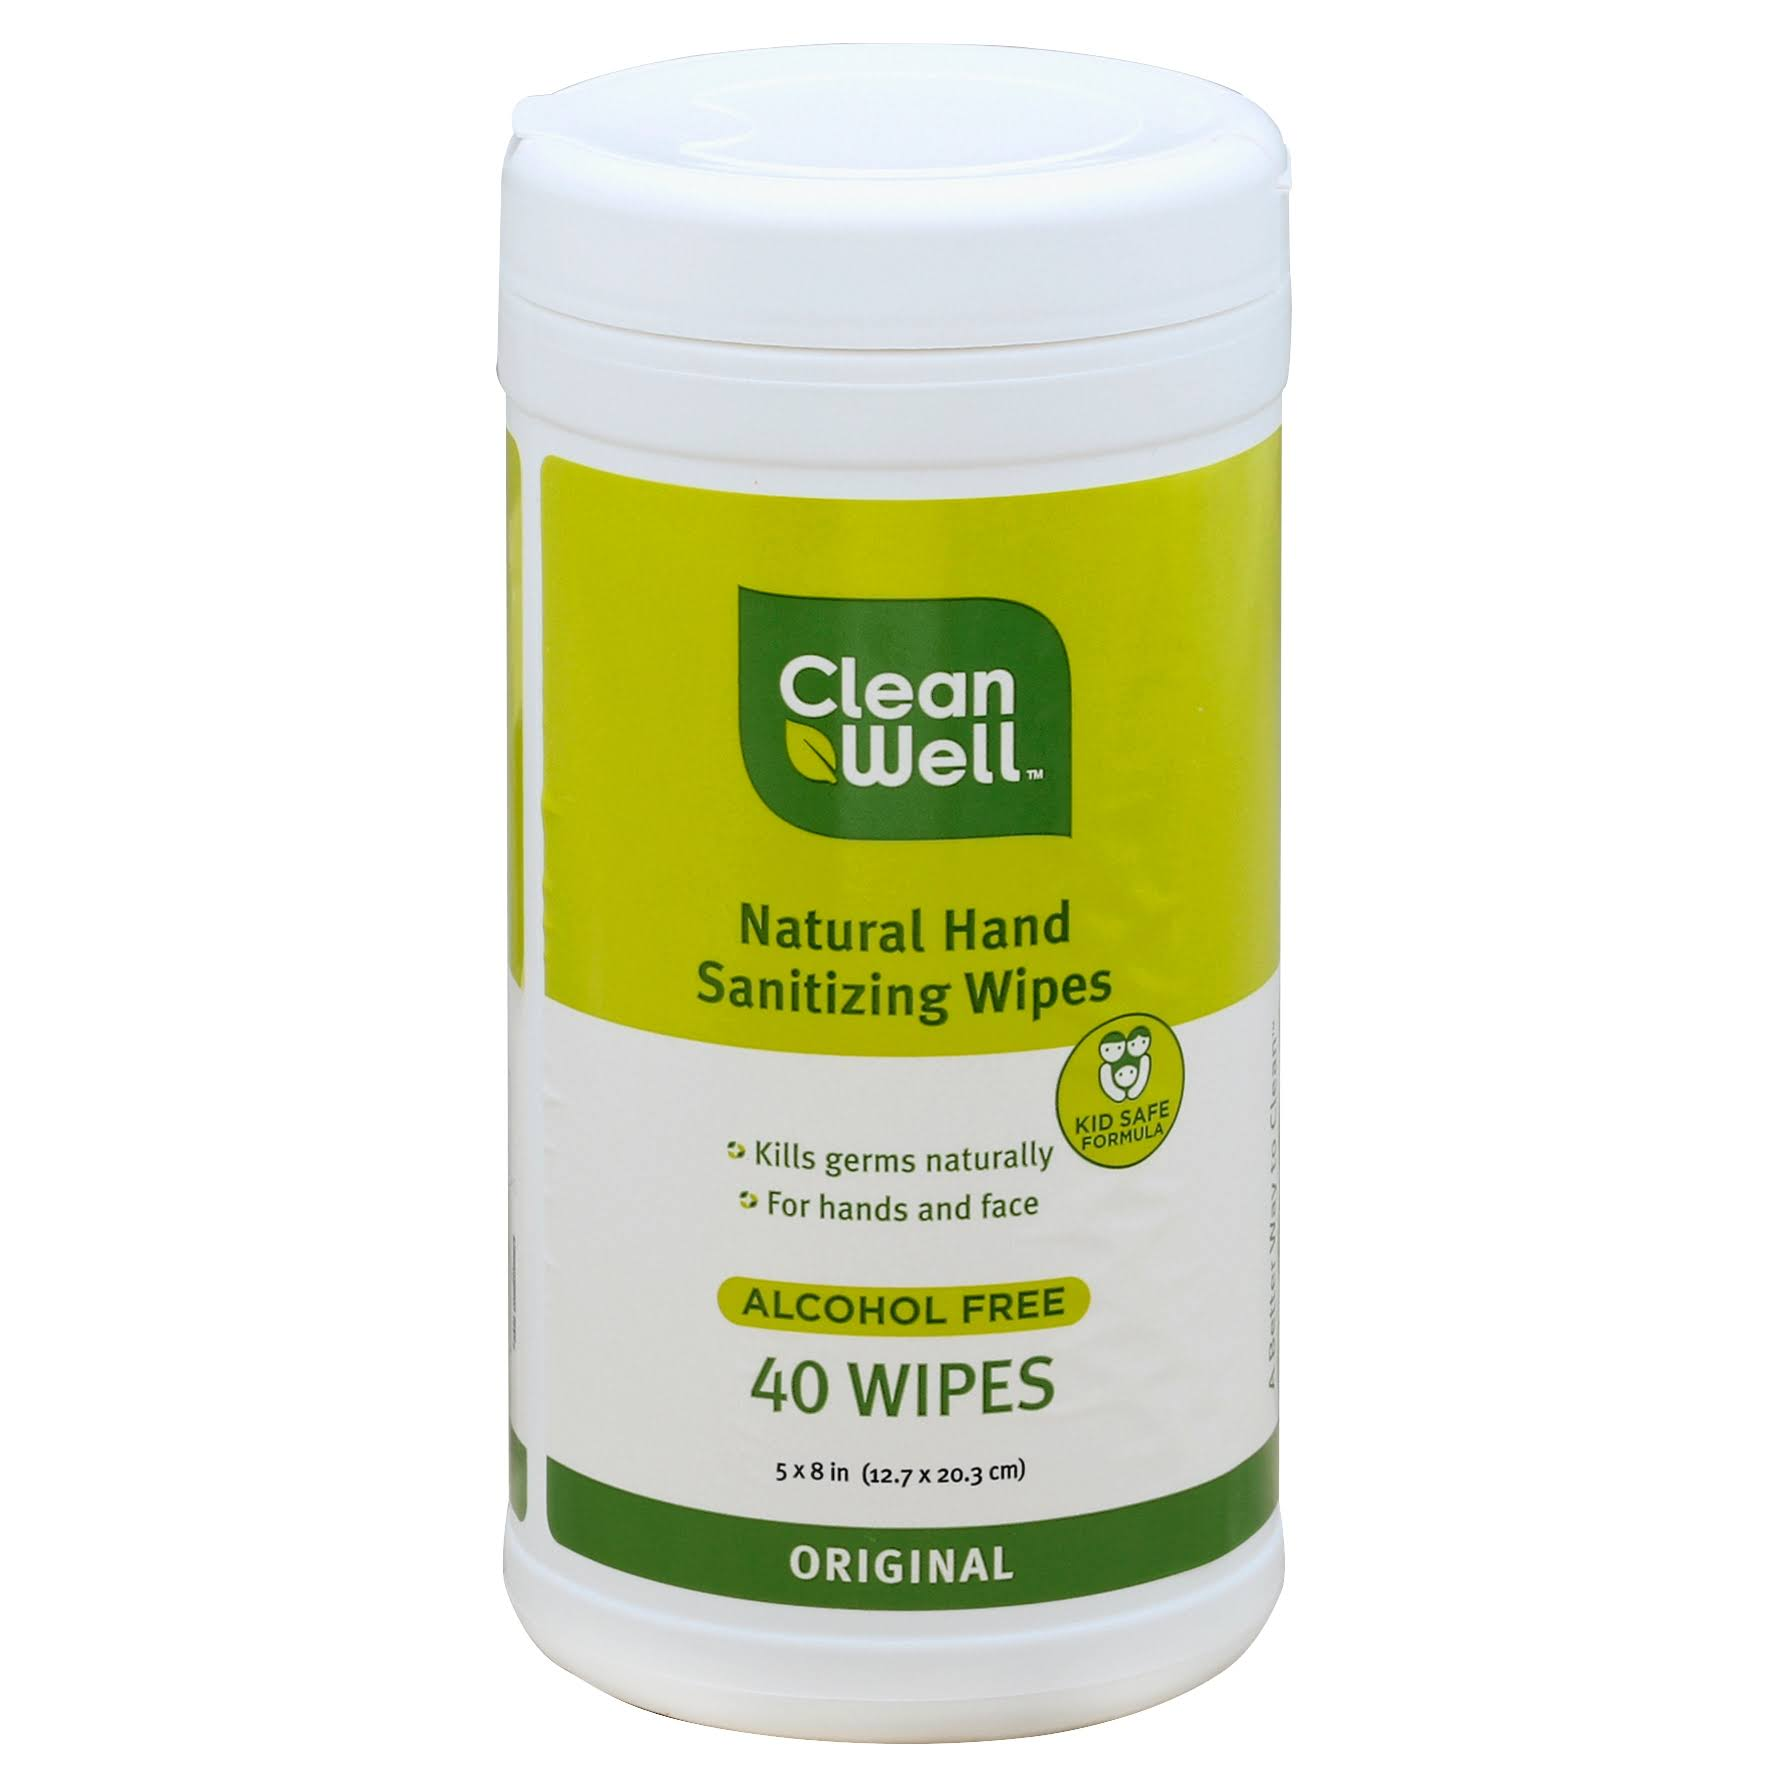 CleanWell All-Natural Hand Sanitizing Wipes - Original